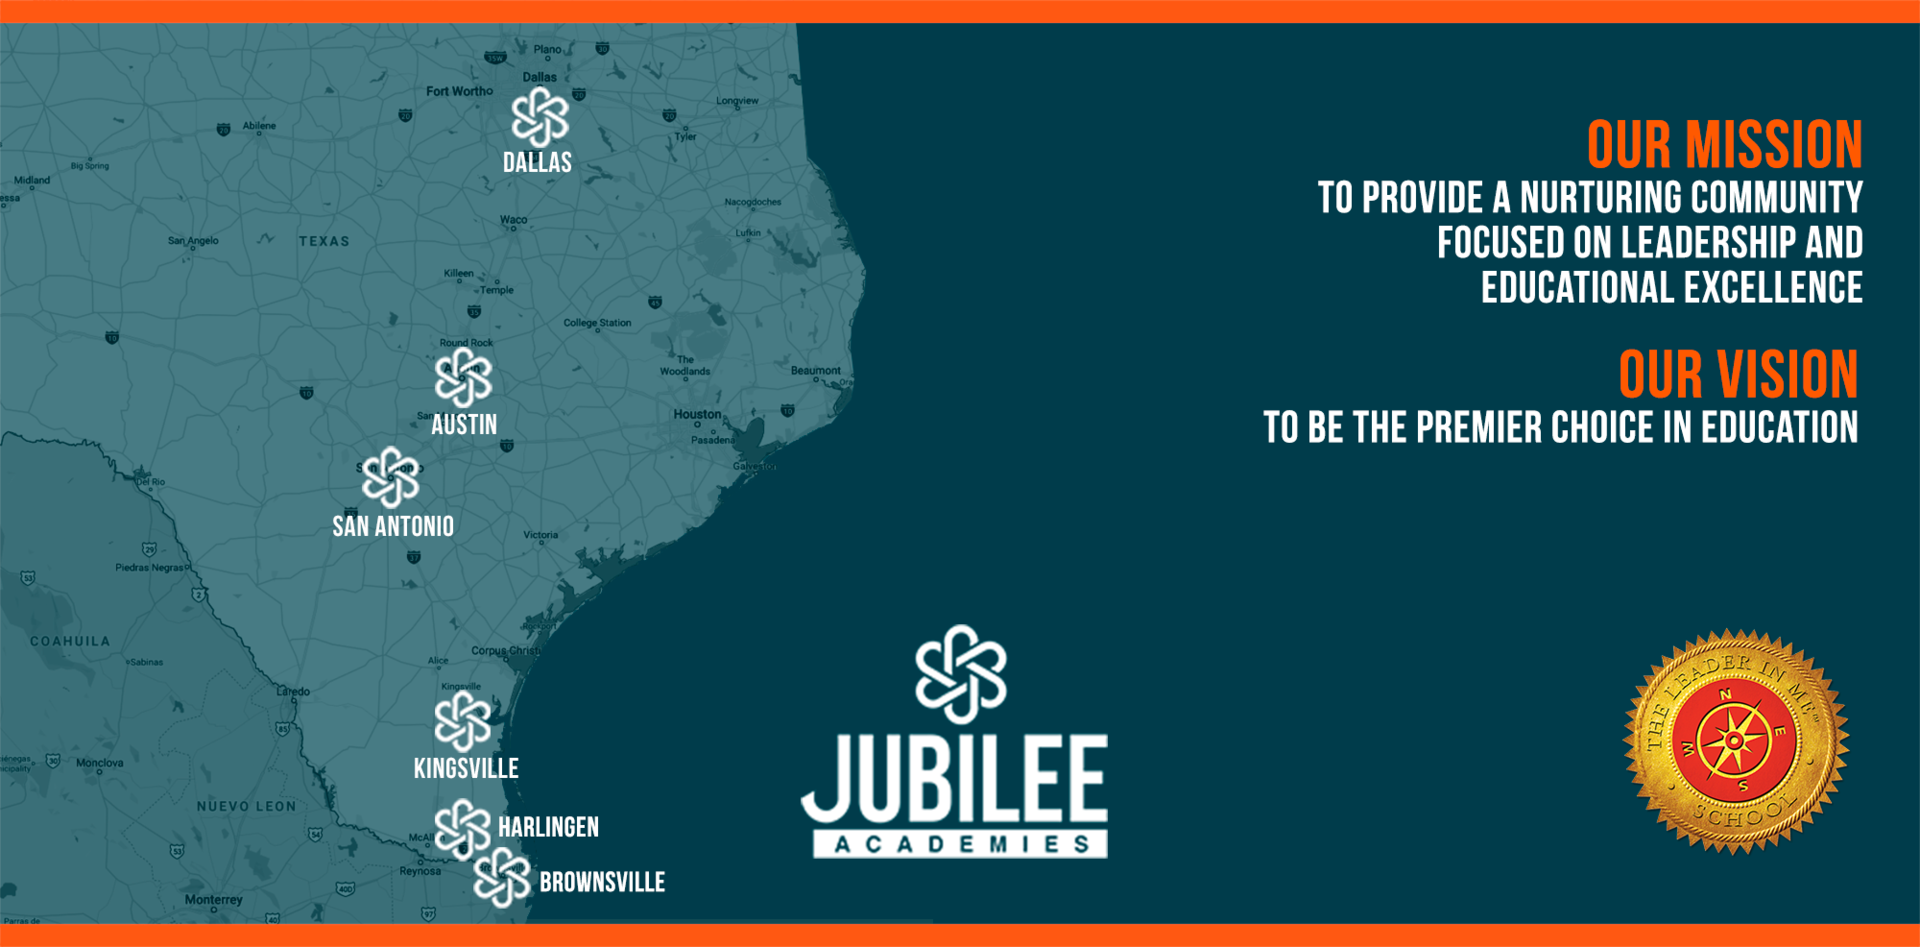 Jubilee Academies Locations